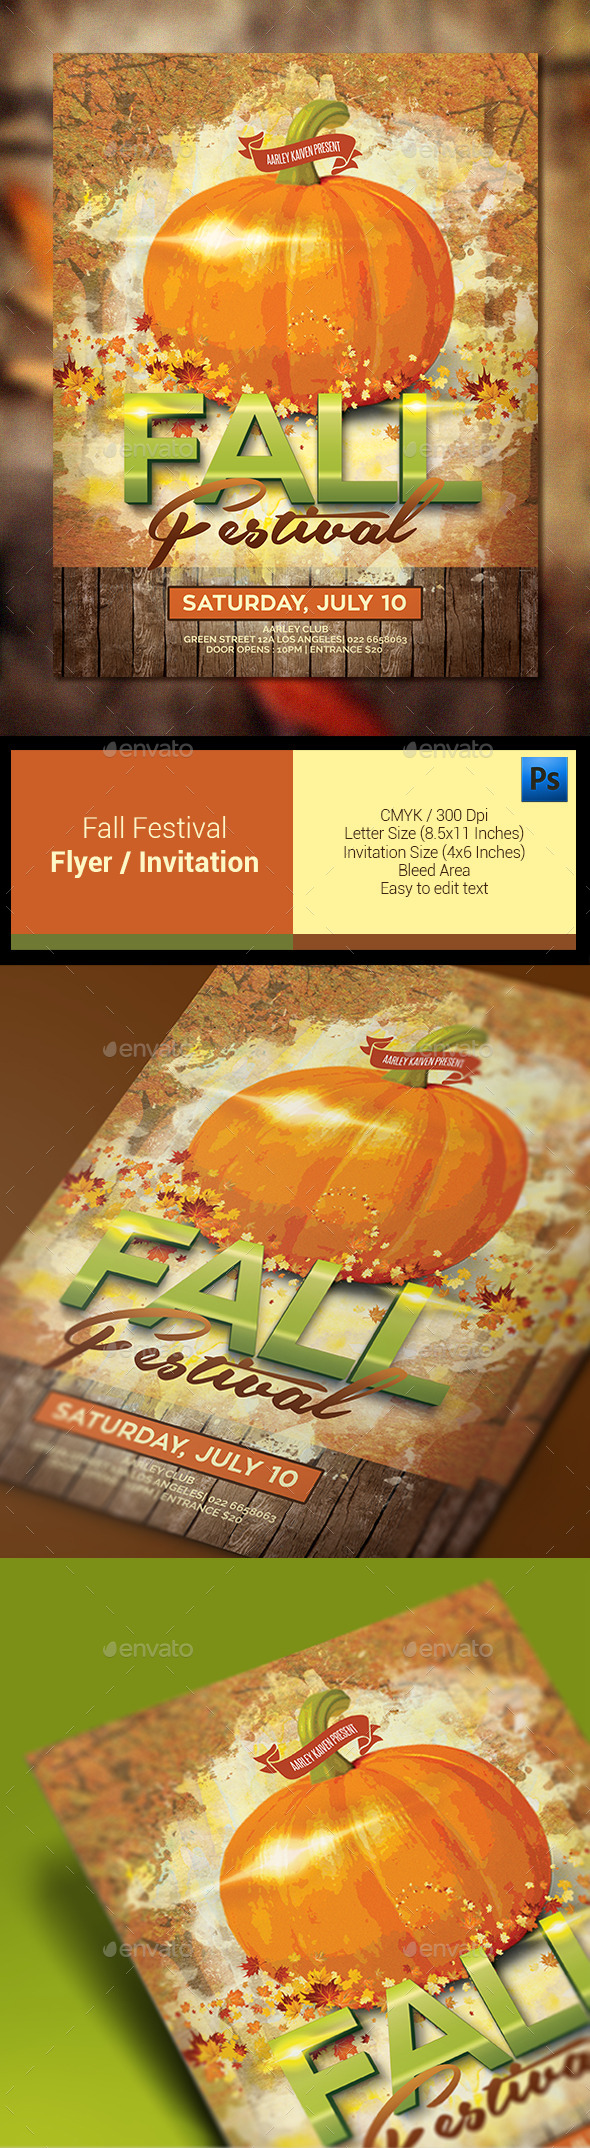 Fall Festival Flyer / Invitation - Events Flyers